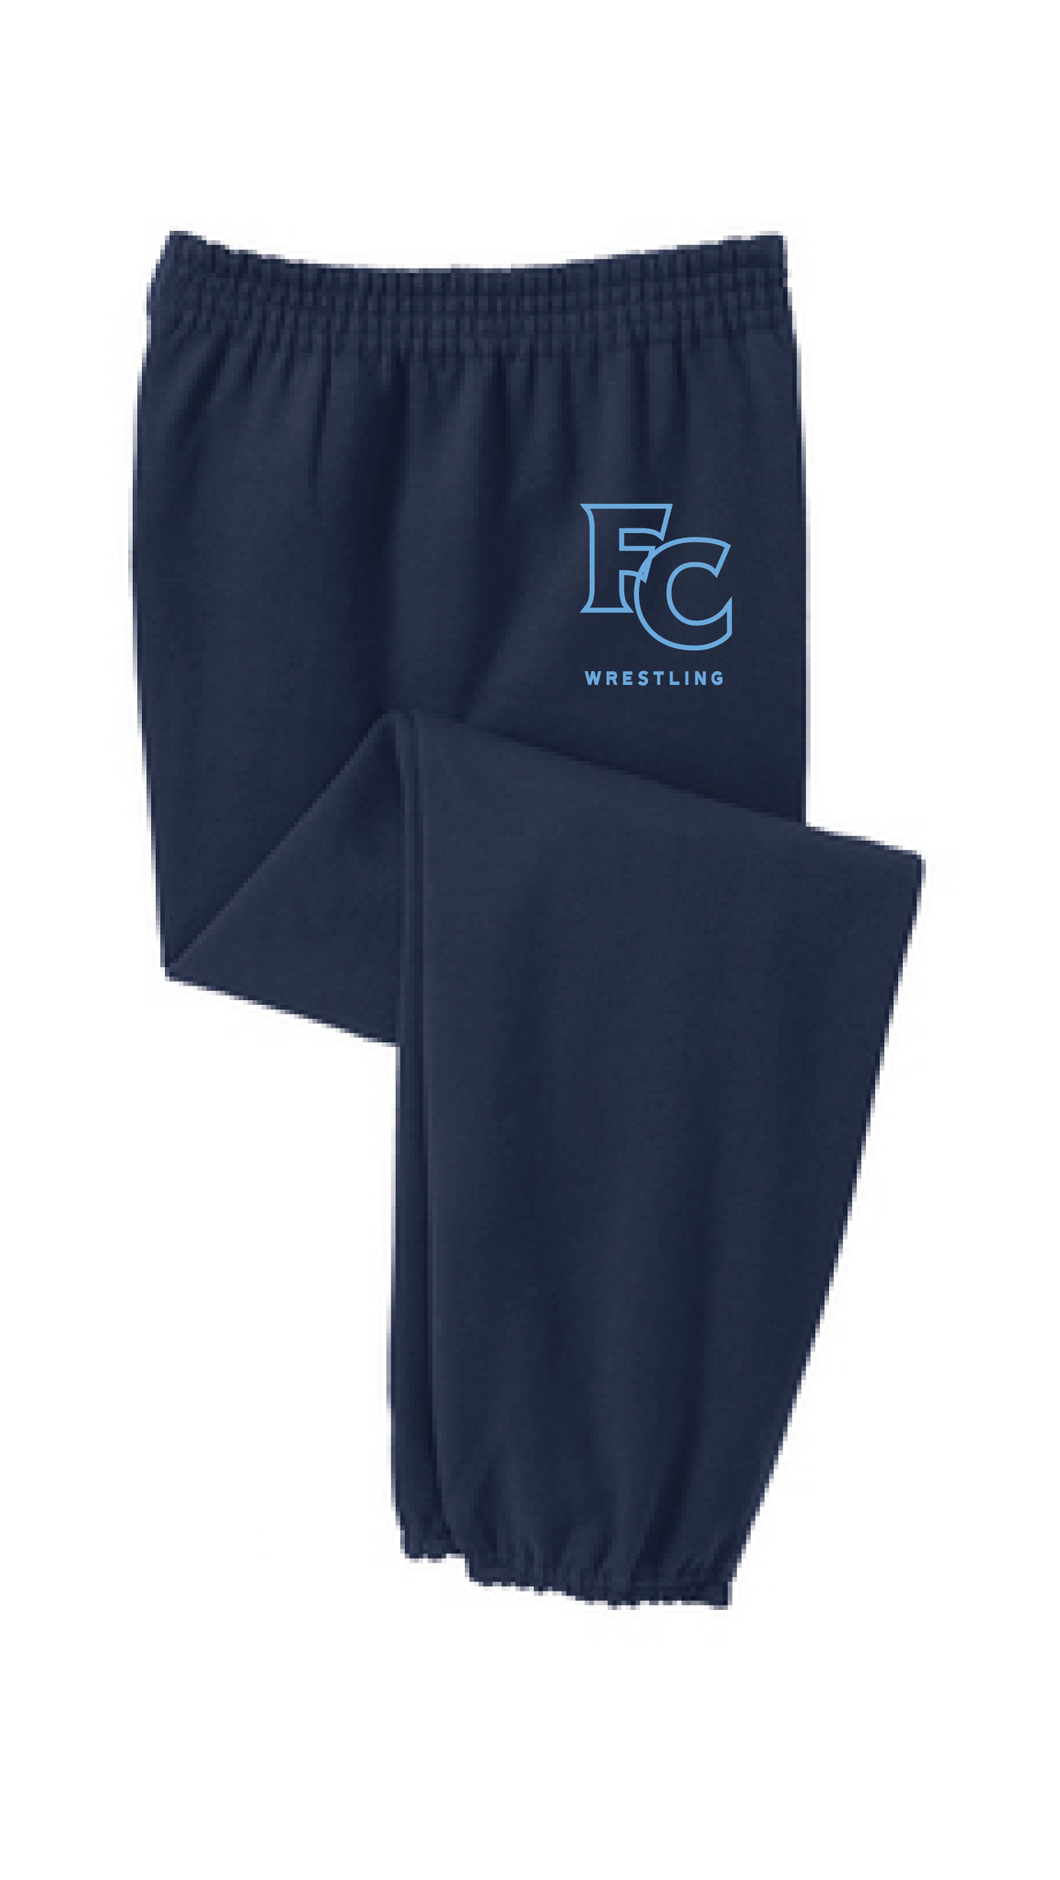 Fleece Sweatpants with Pockets / Navy / FC Wrestling